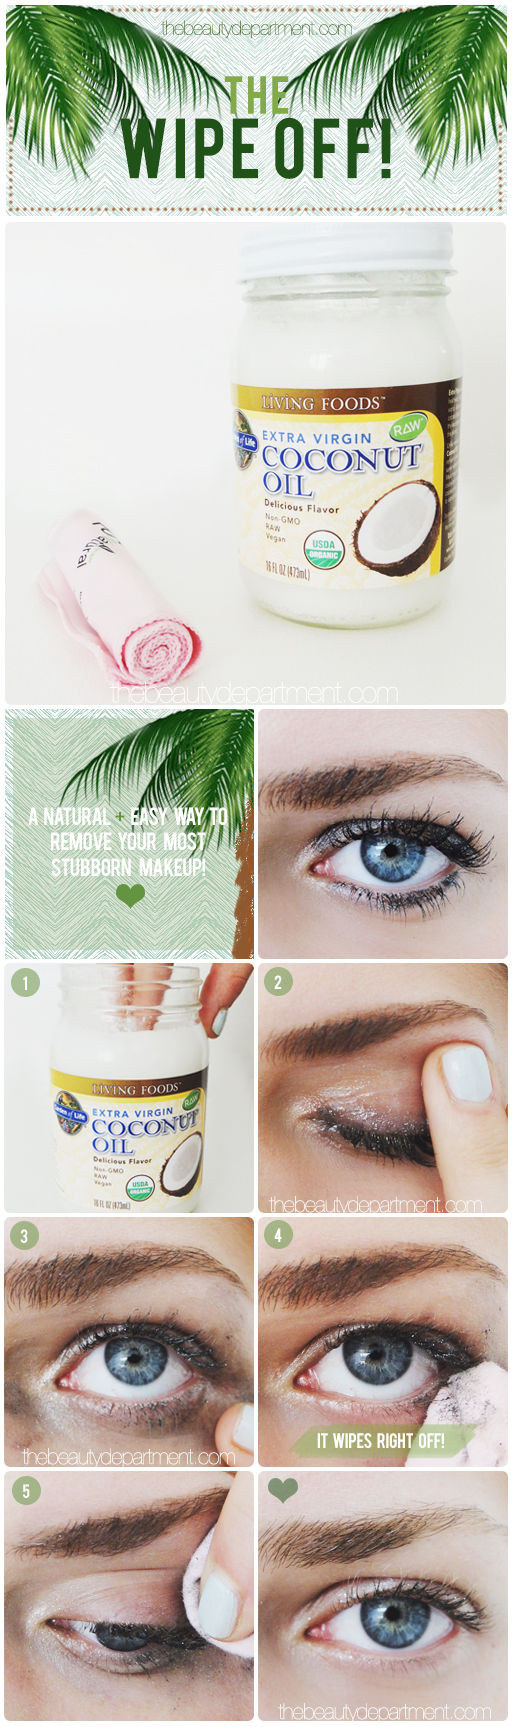 23 Genius Tricks That Will Save You Money On Beauty Products